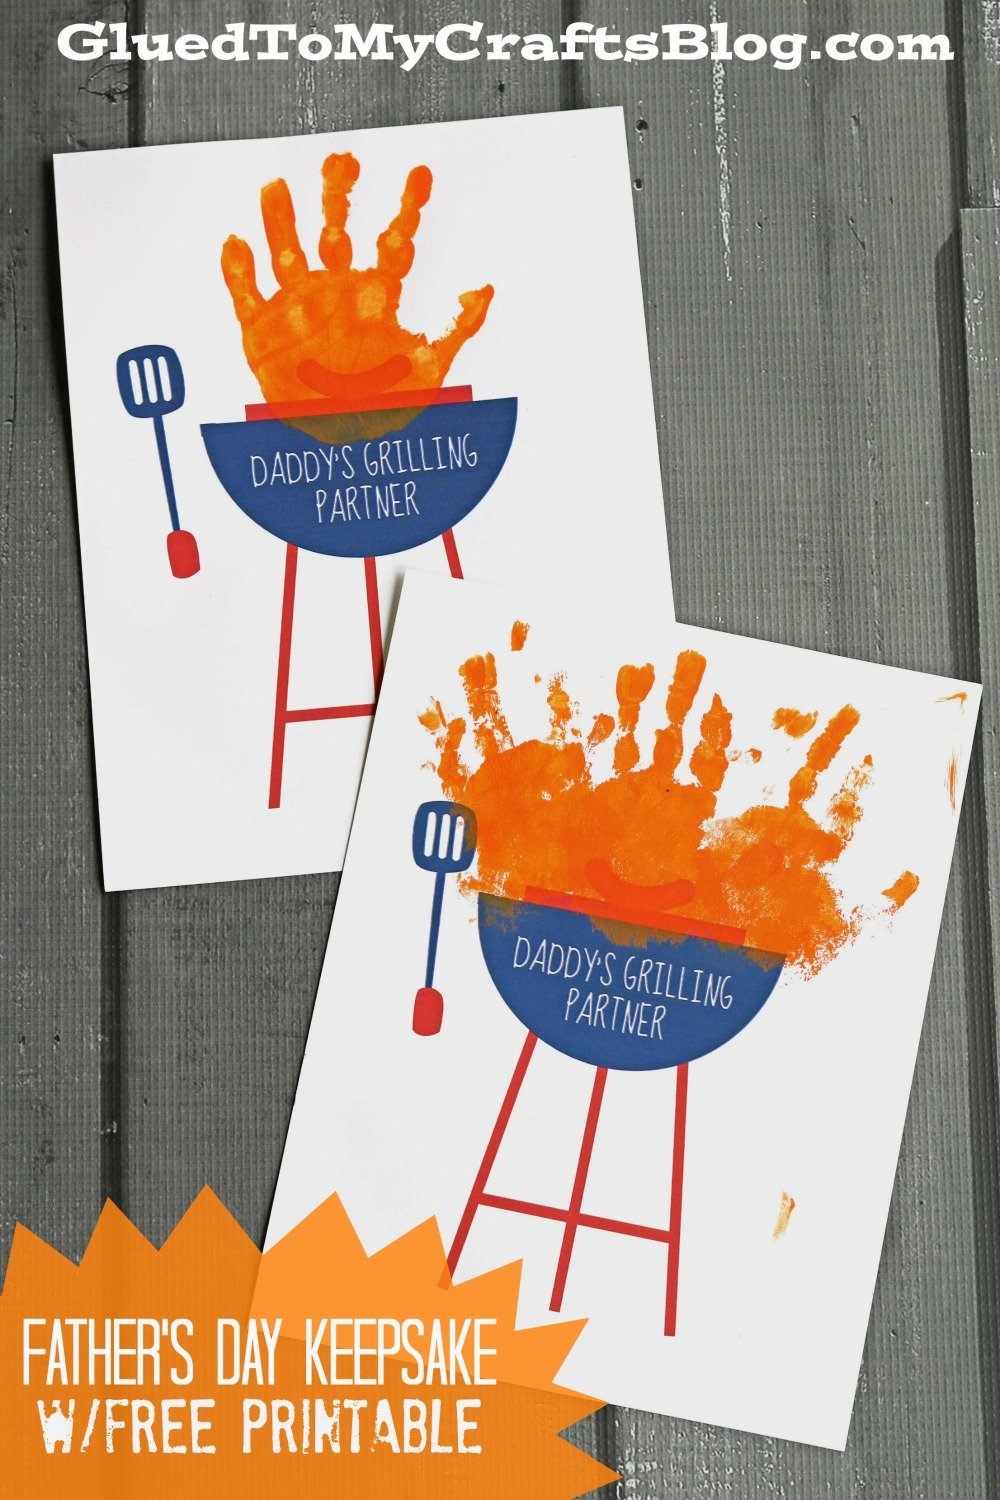 Daddy's Grilling Buddies - A Handmade Father's Day Gift Idea featured on The Birch Cottage blog